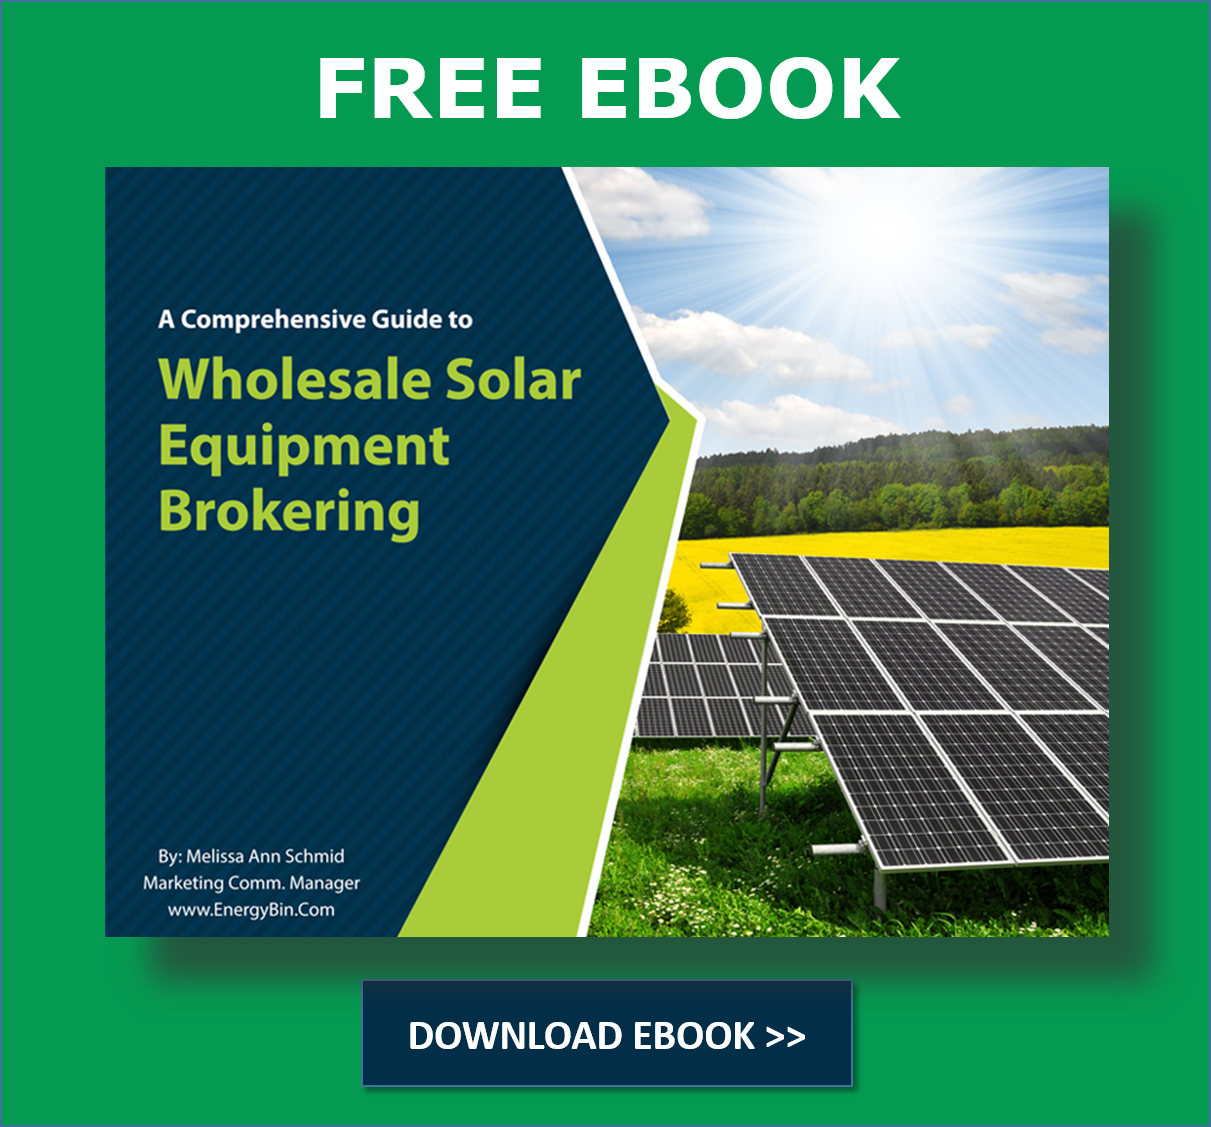 Download Guide to Wholesale Solar Equipment Brokering